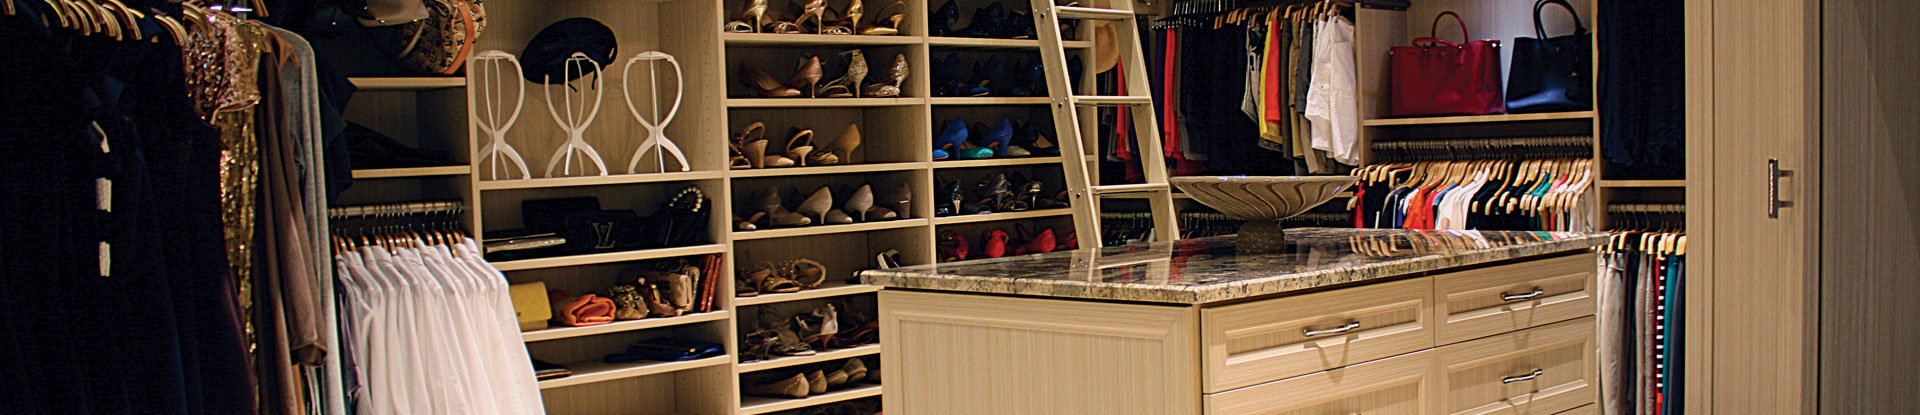 customclosets-header